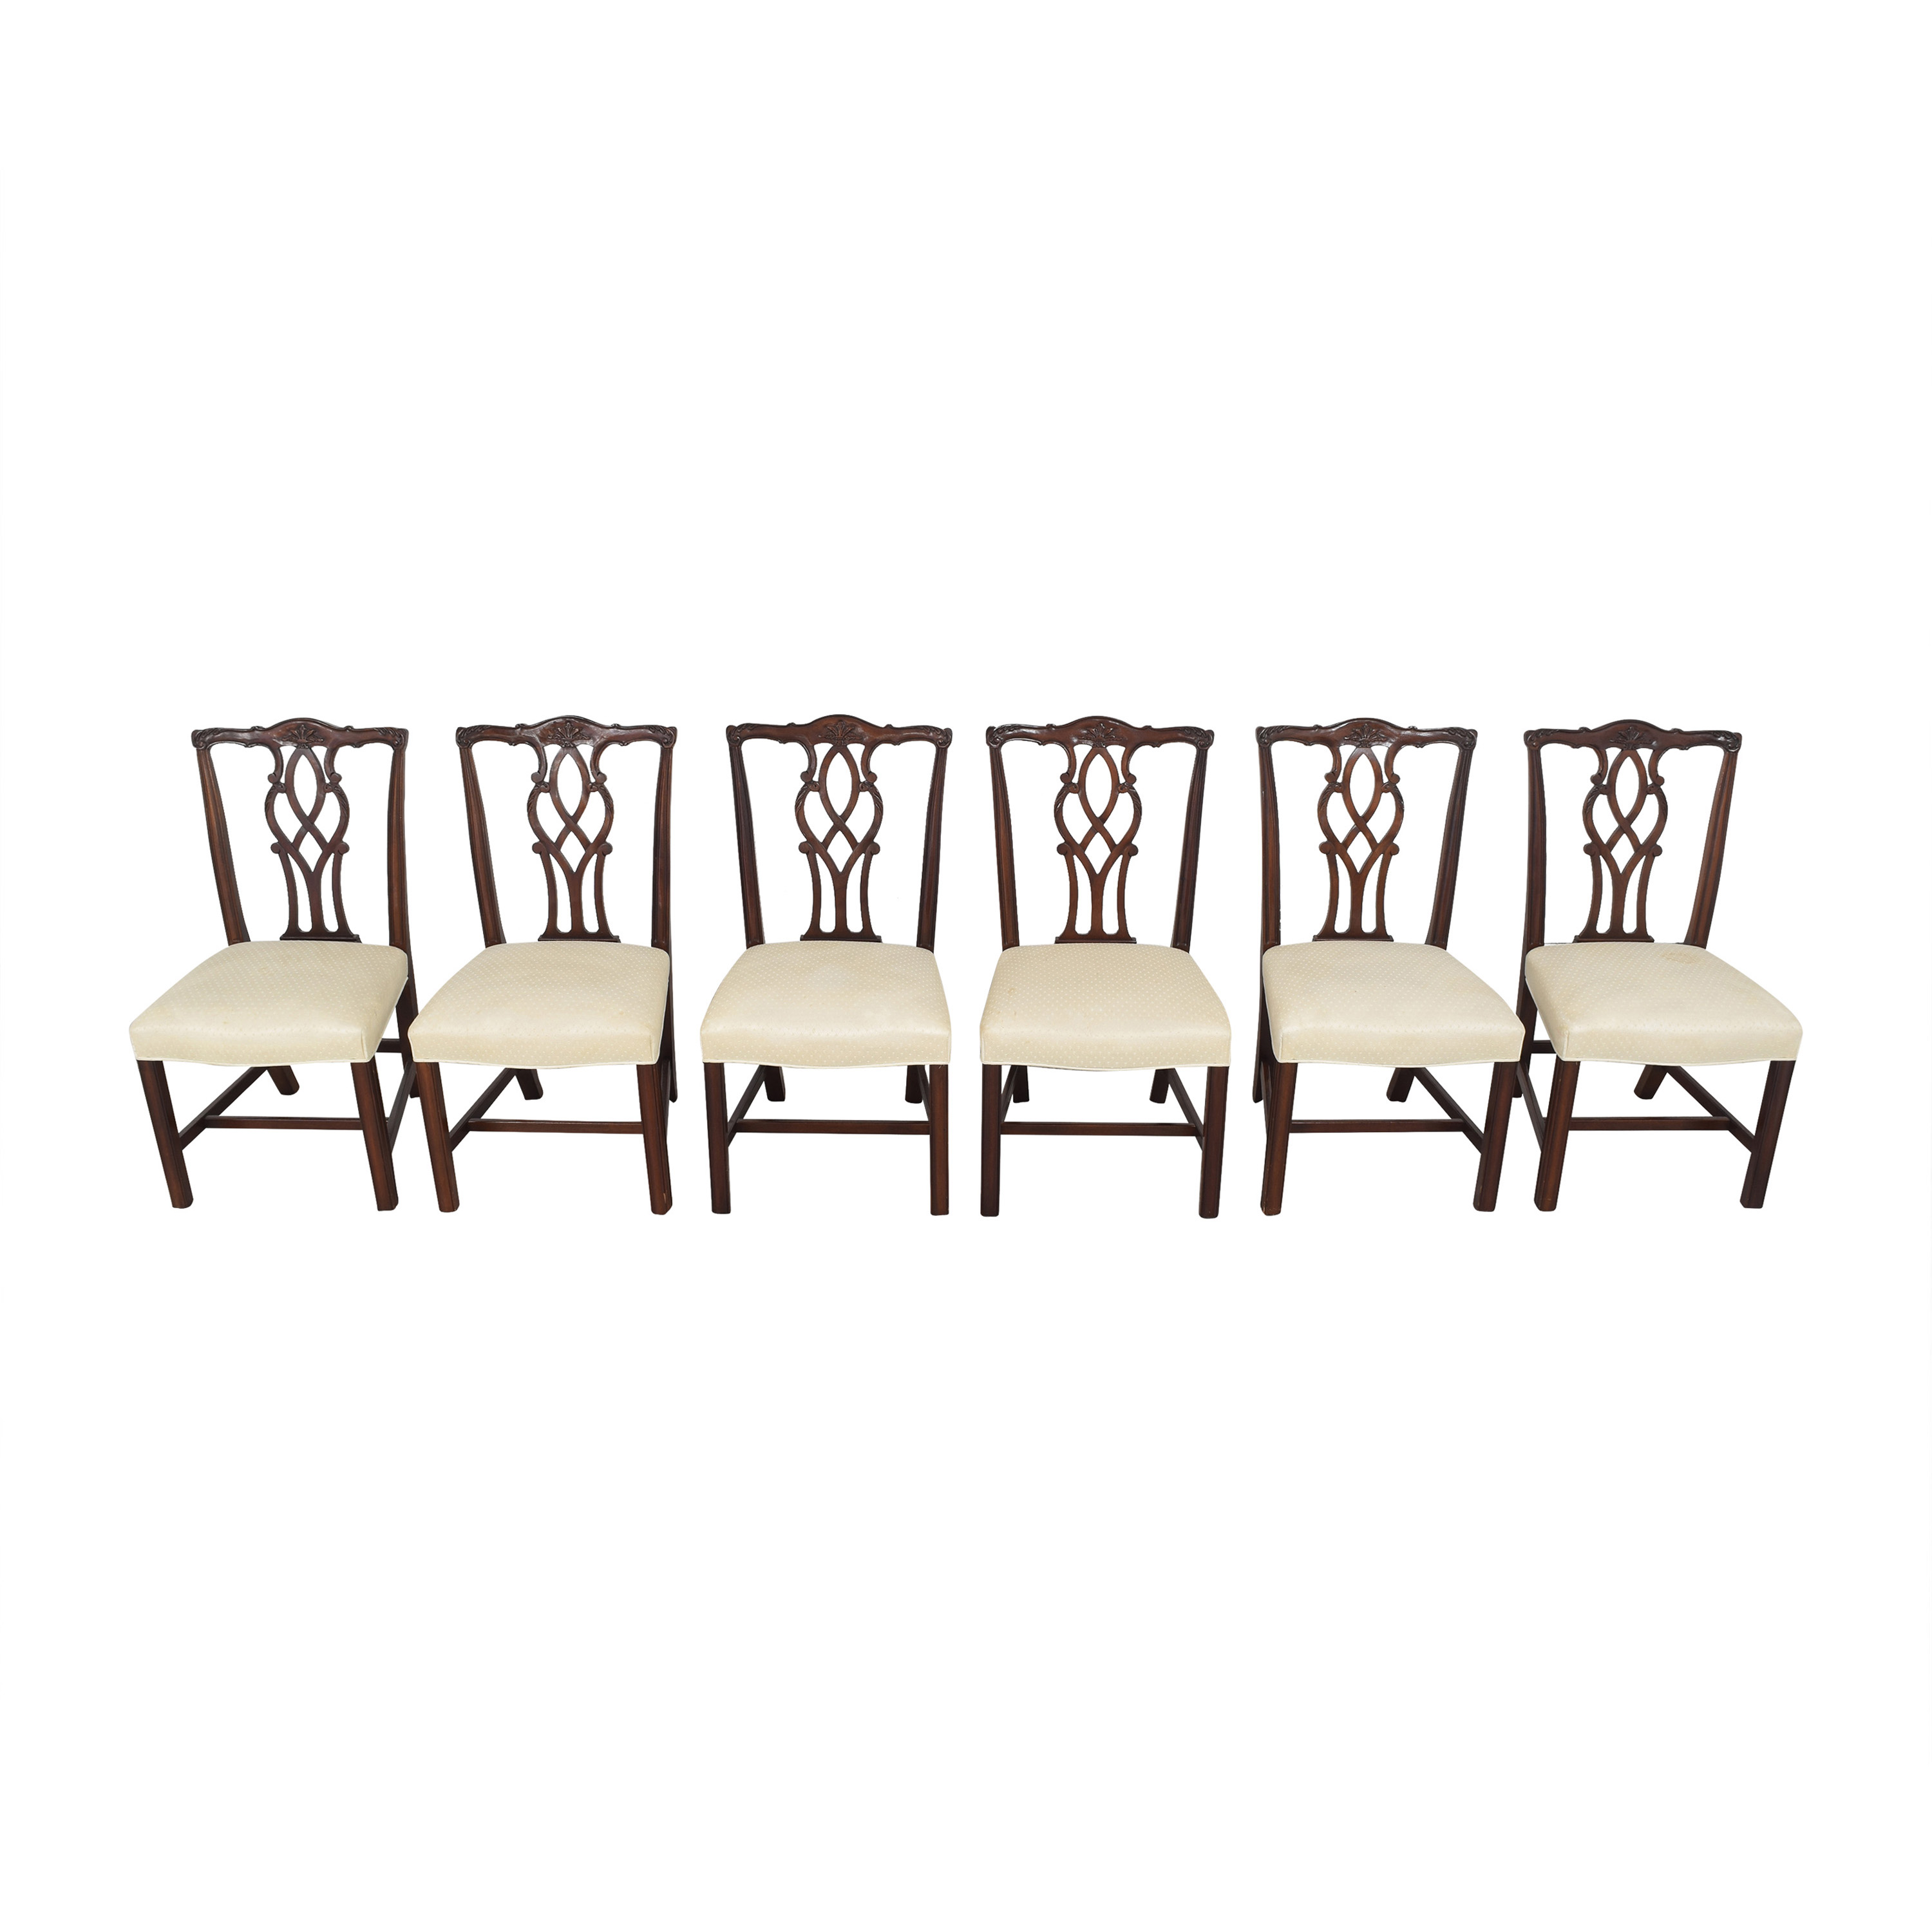 buy Kindel Chippendale Dining Side Chairs Kindel Chairs